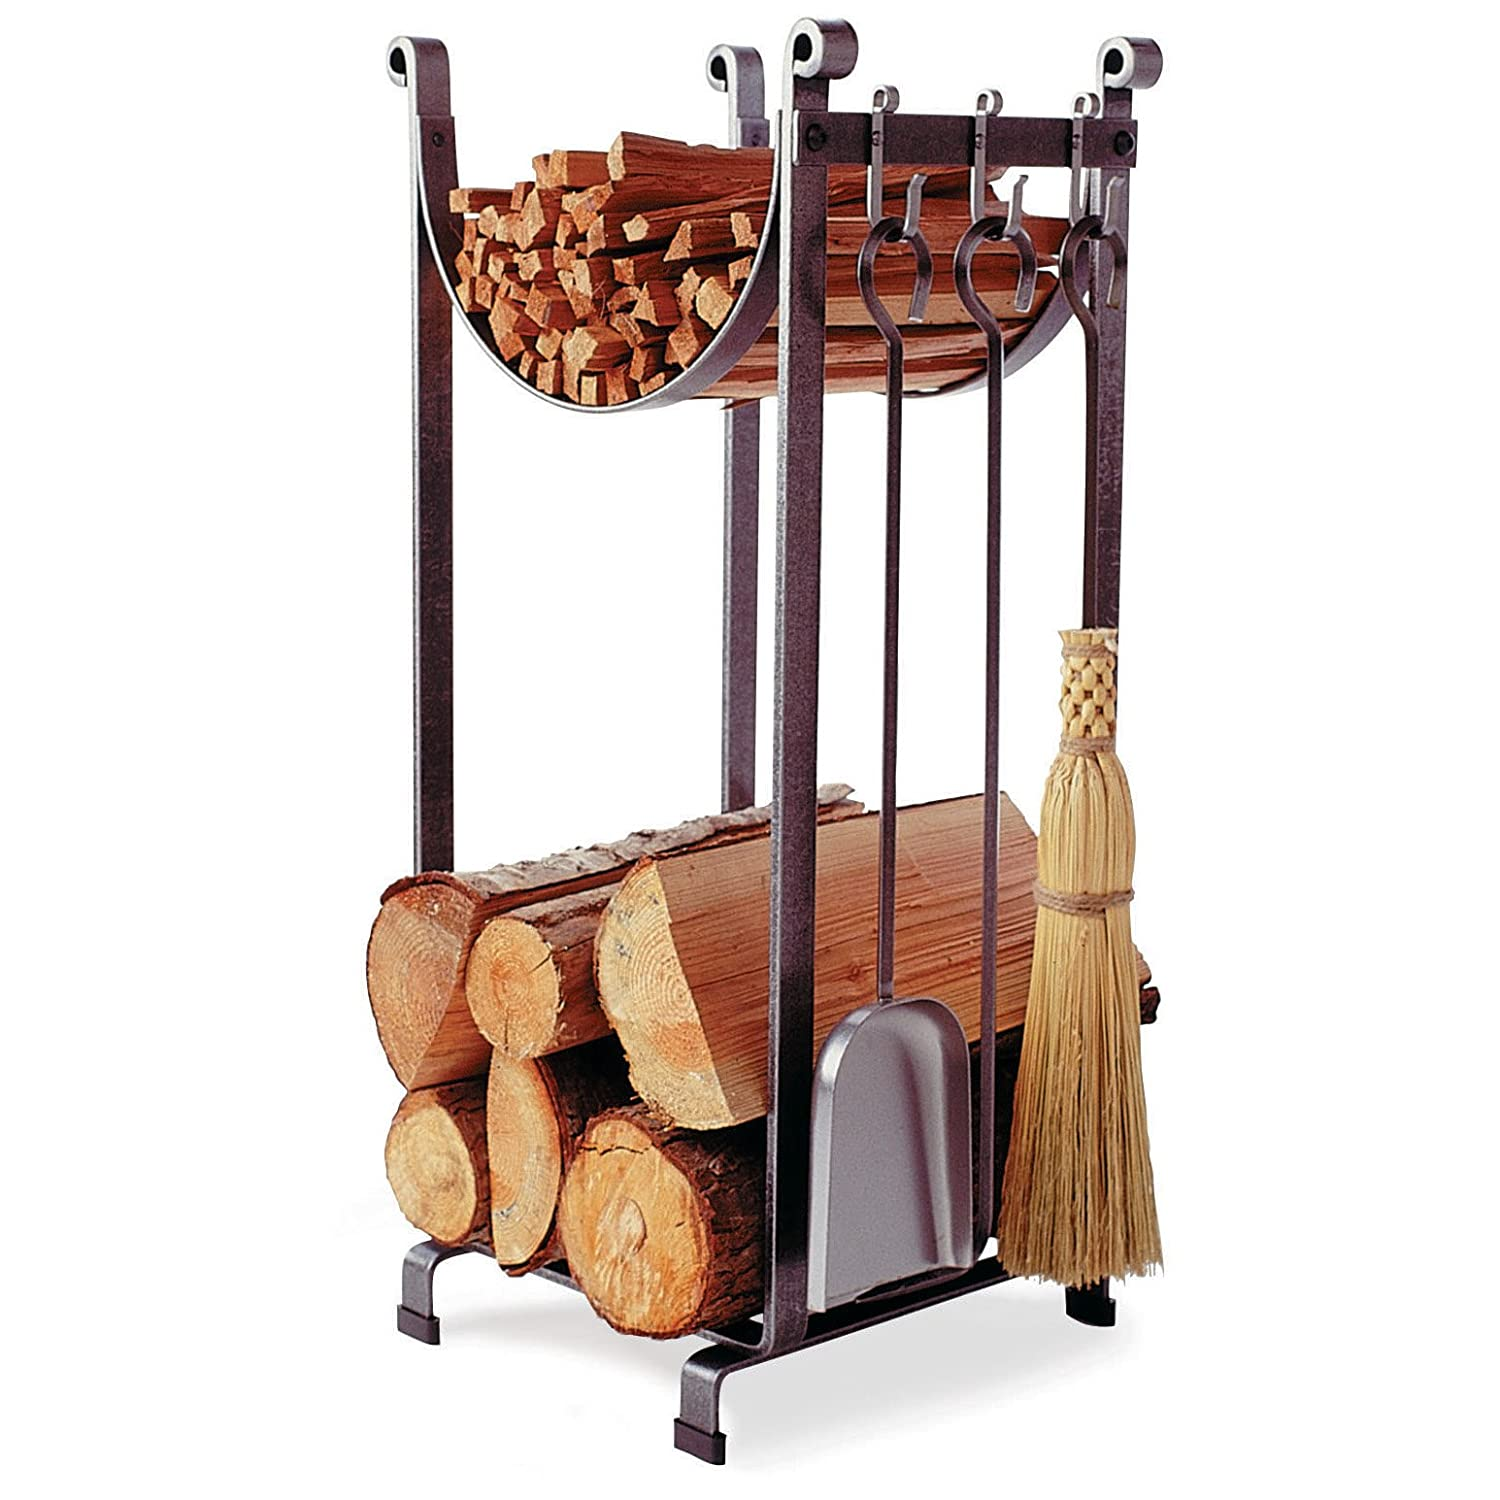 Outdoor Firewood Racks | Amazon.com